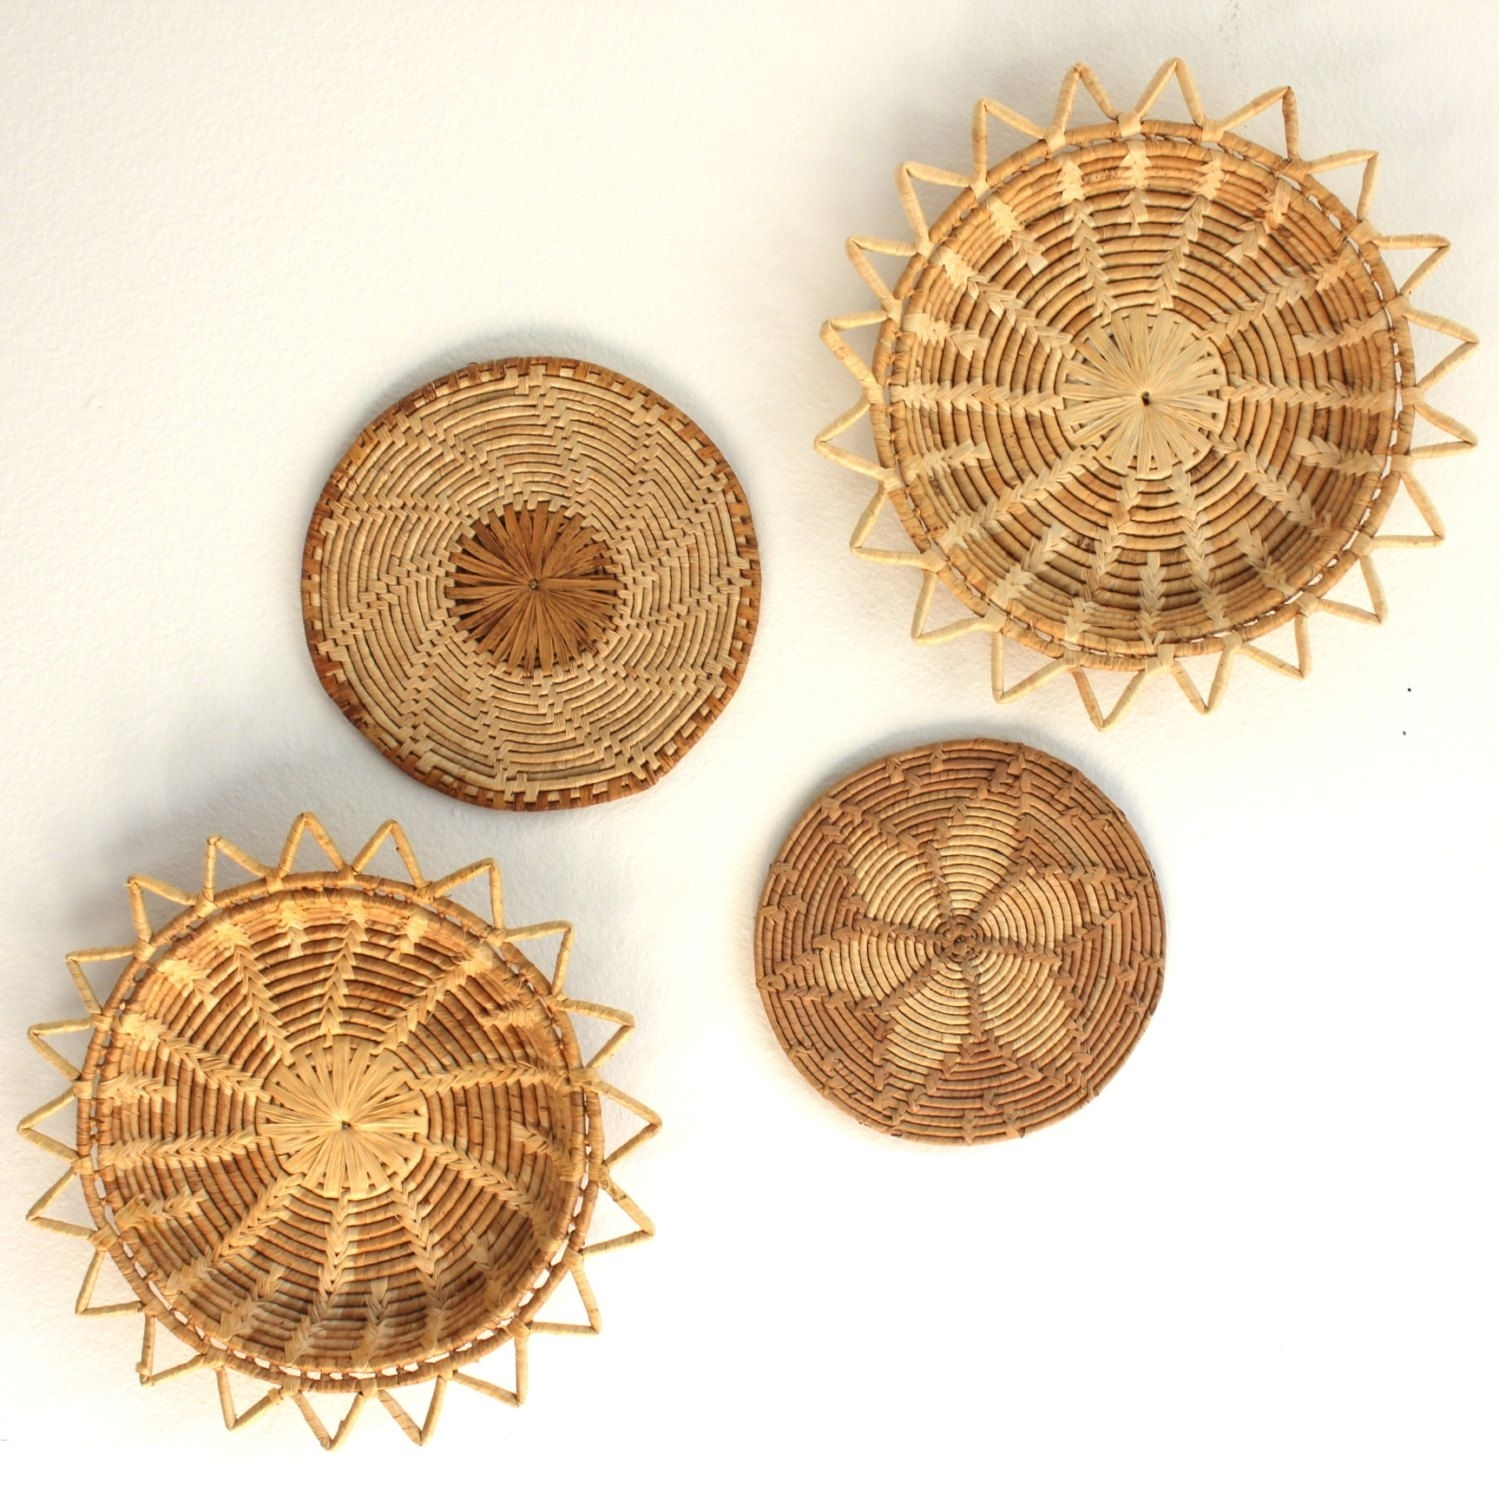 Woven Starburst Wall Basket Art Boho Beach Decor | Pinterest Intended For Most Up To Date Woven Basket Wall Art (View 20 of 20)